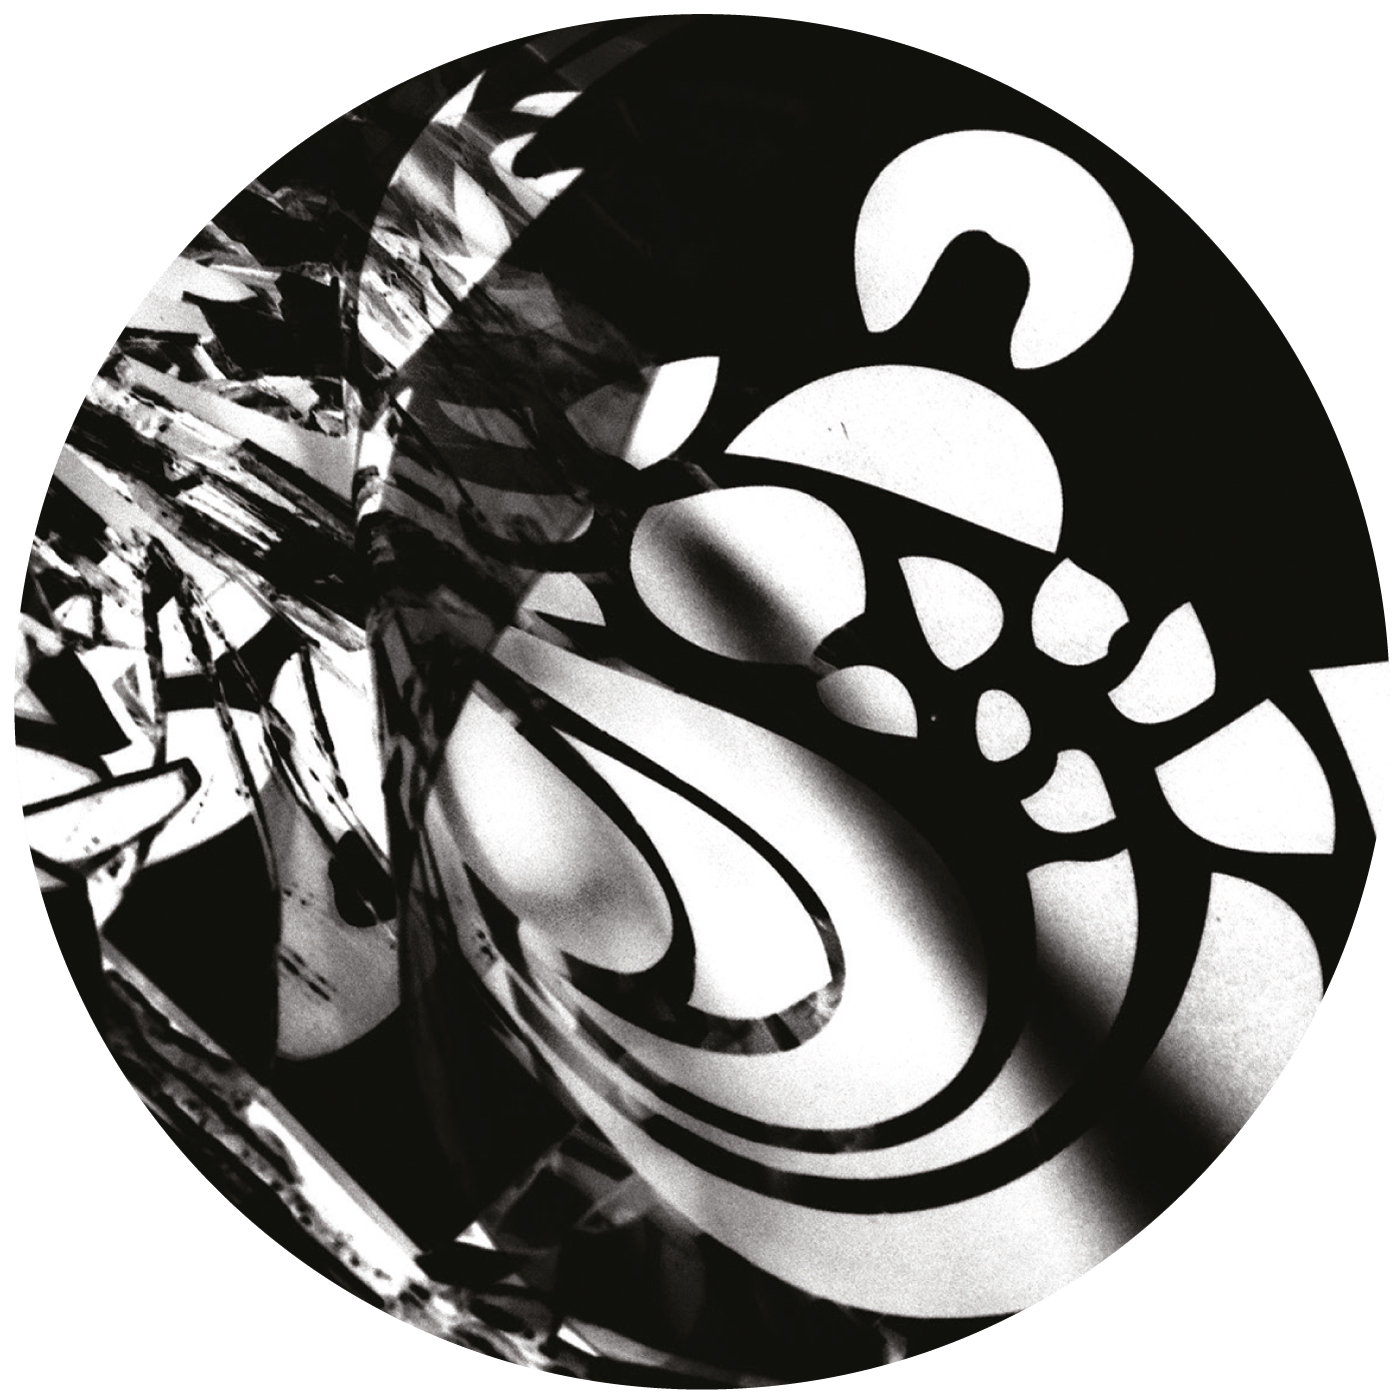 Batu/SPOOKED & CLARITY (DISMANTLED) 12""